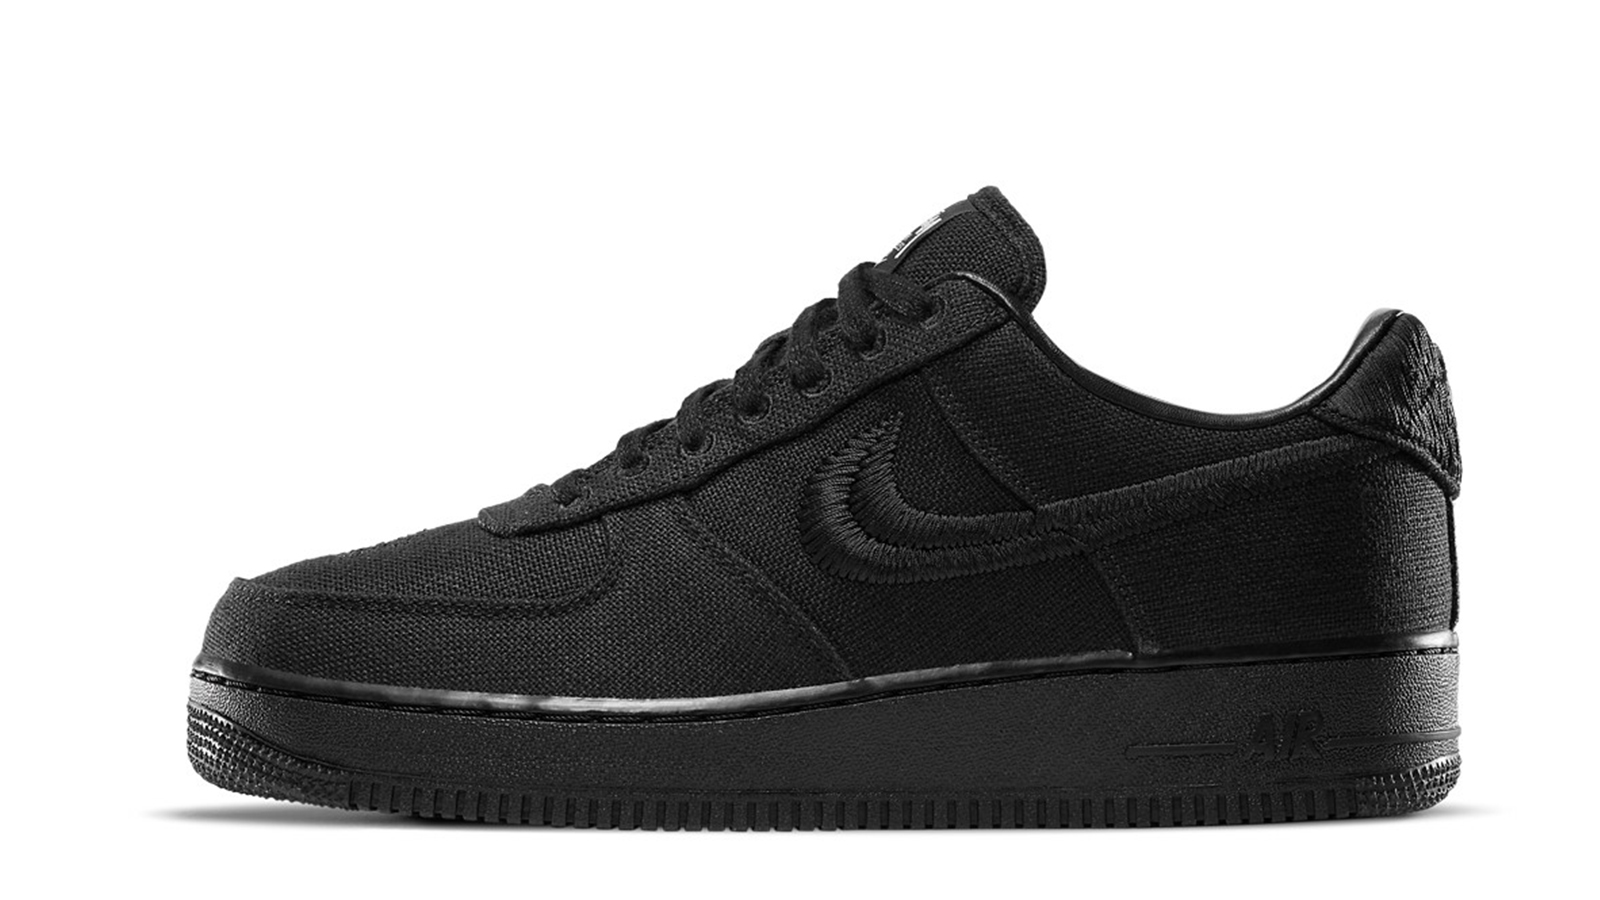 Stussy x Nike Air Force 1 Black CZ9084-001